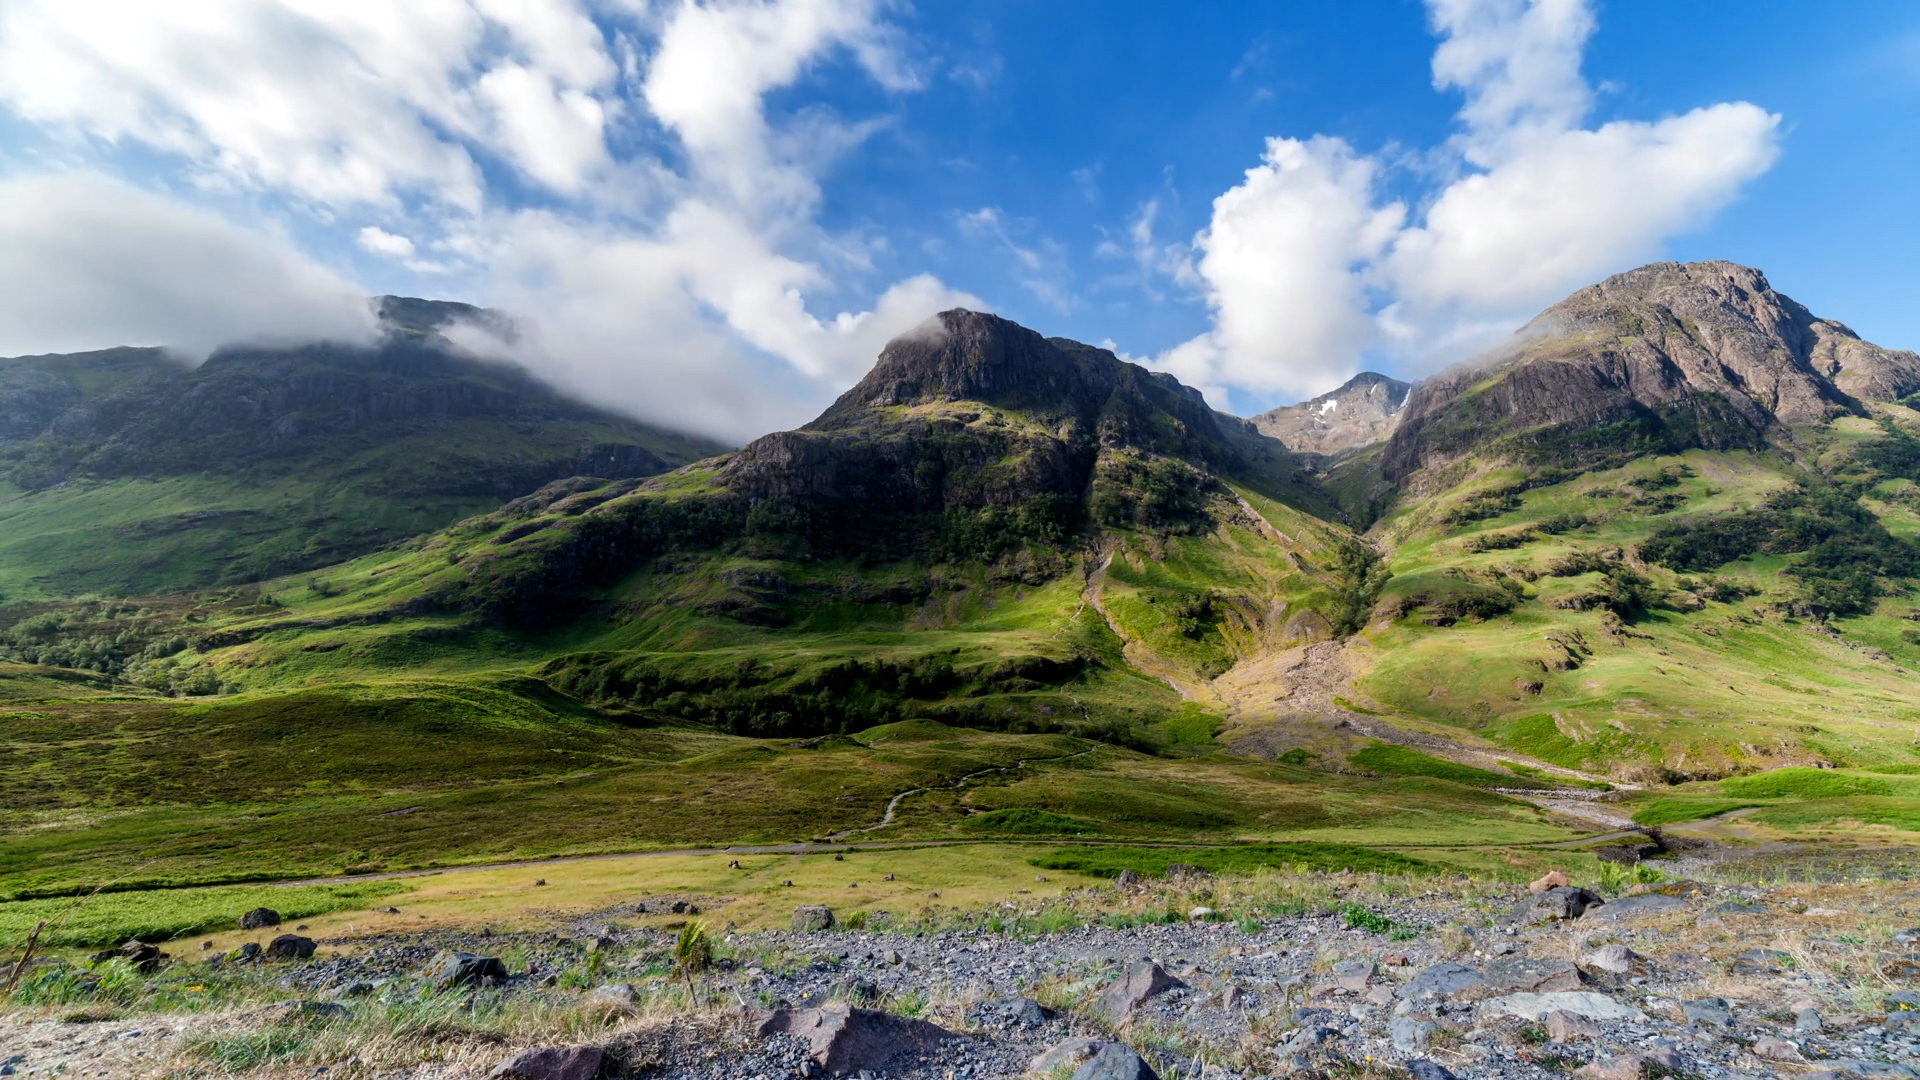 Scotland is Stunning - Let's Keep it that Way